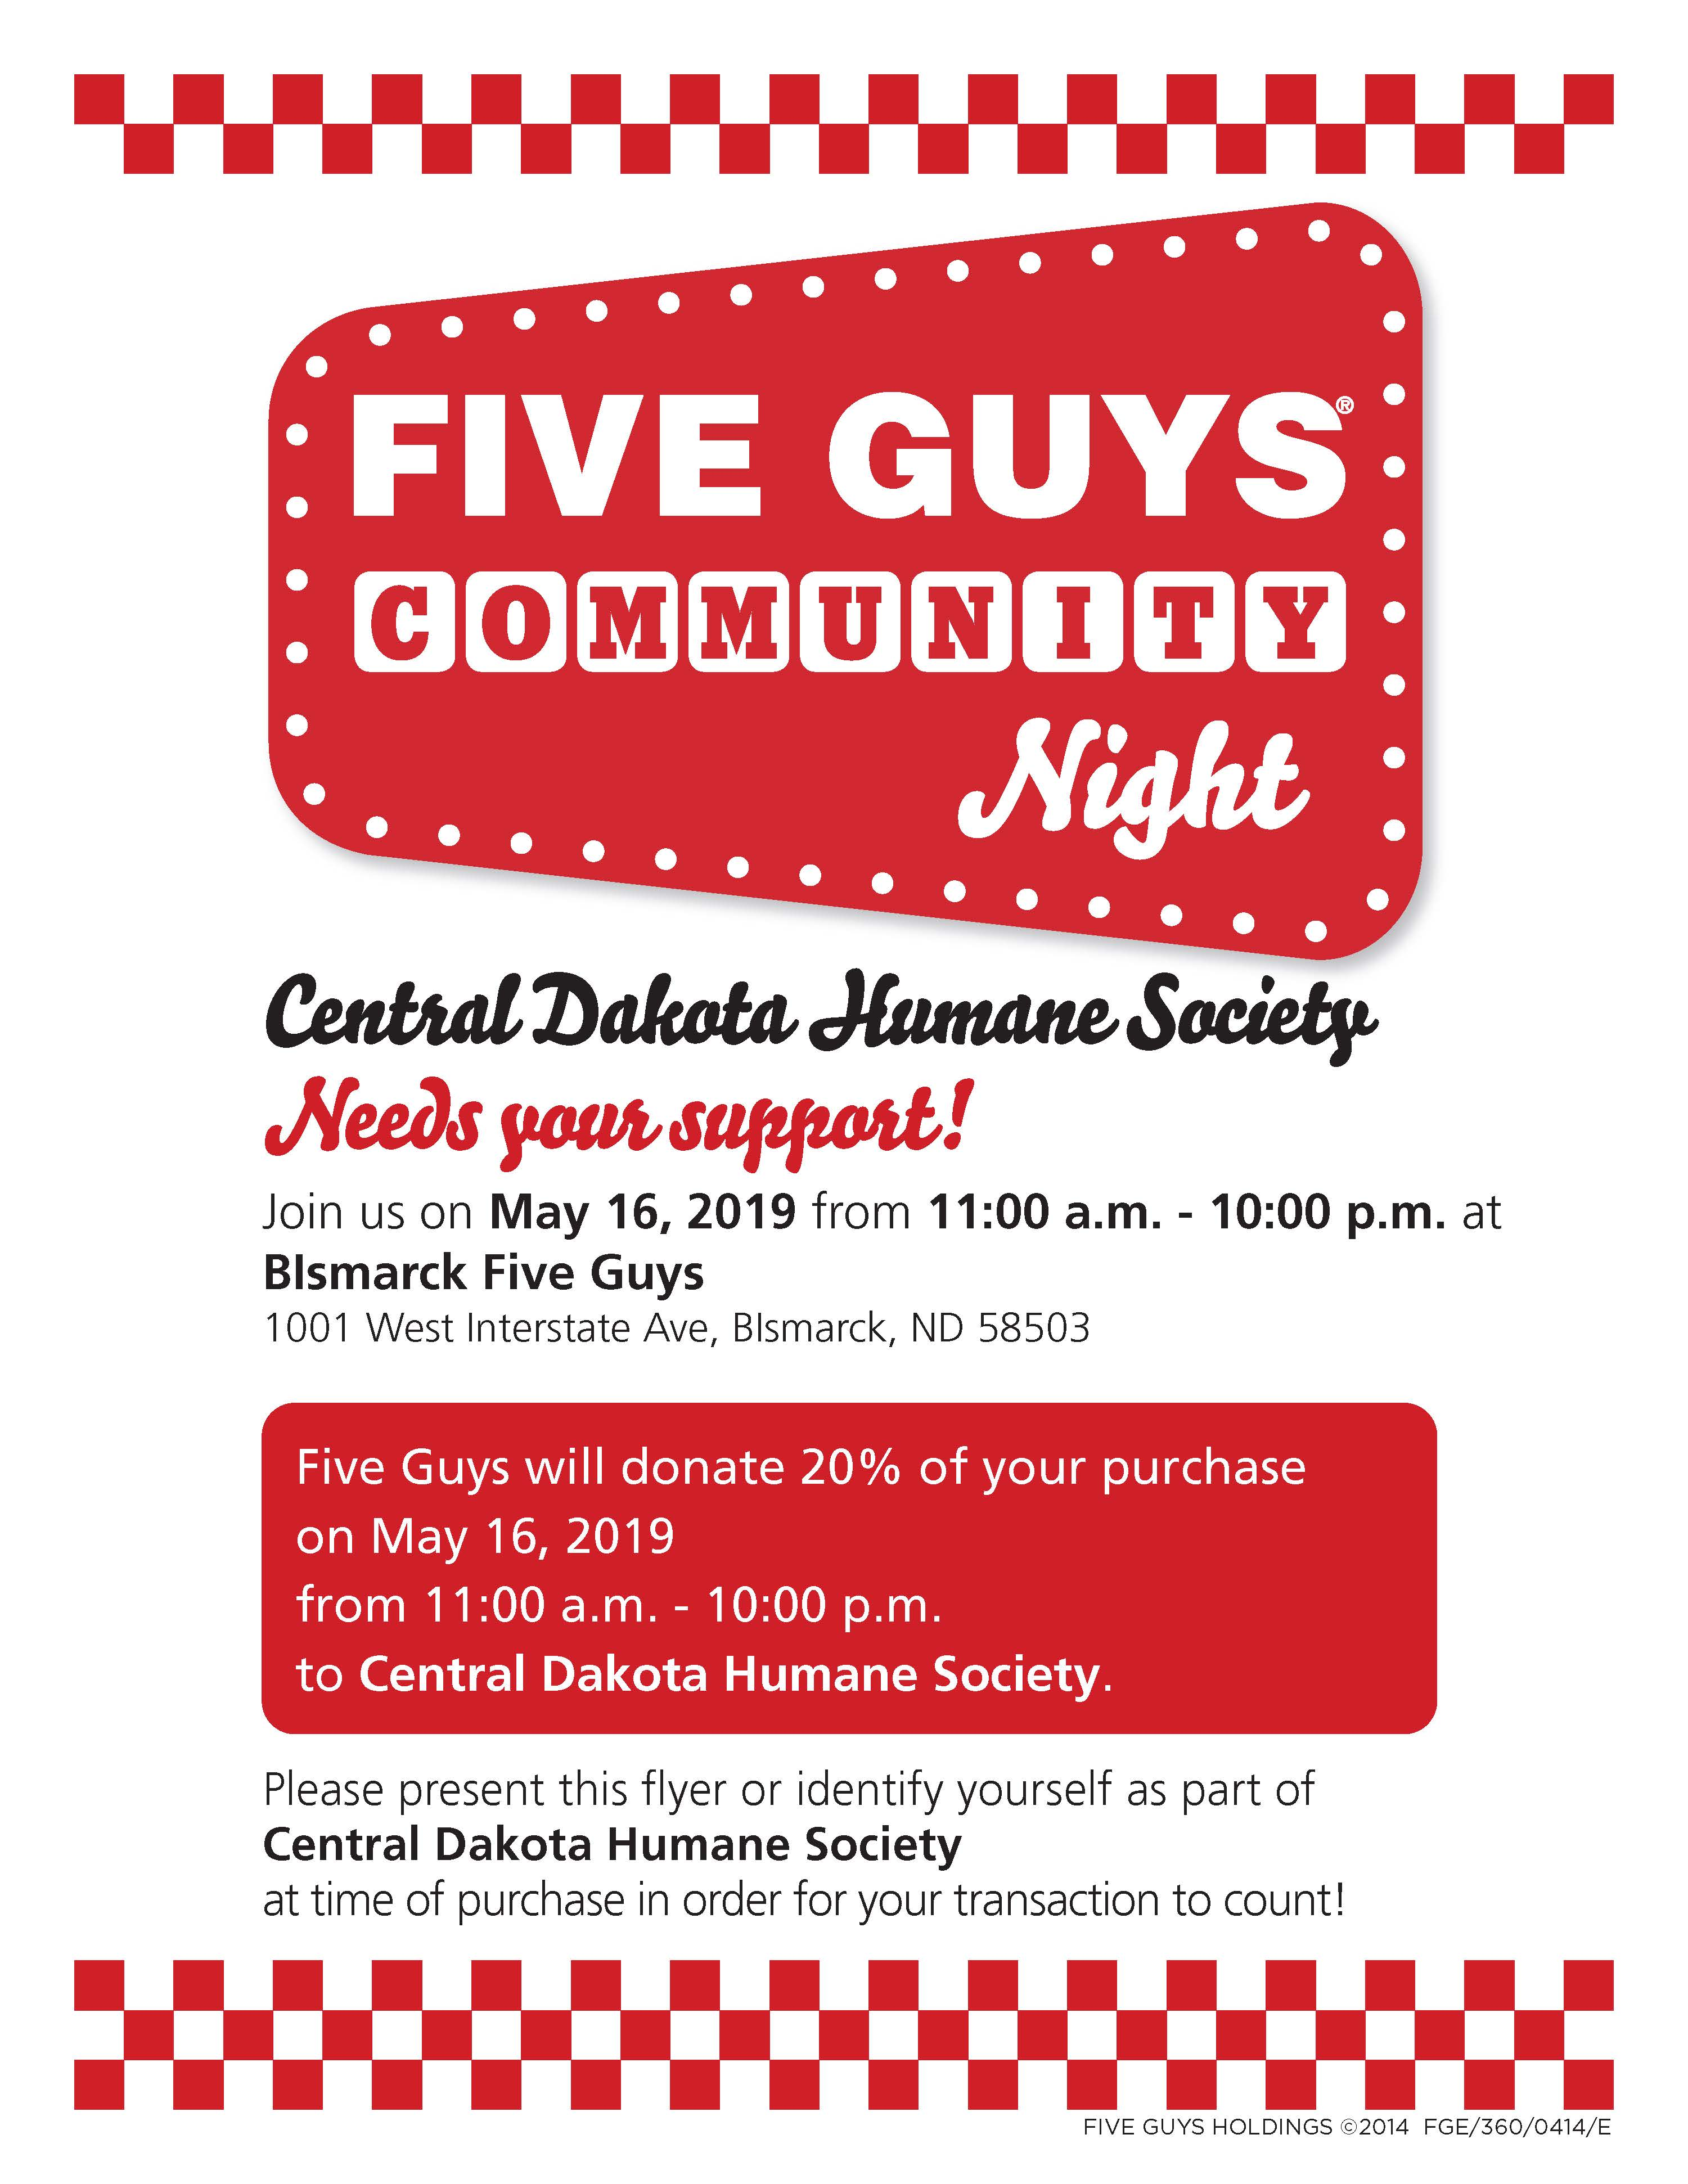 Five Guys - May 16 - 11 a.m. to 10 p.m.